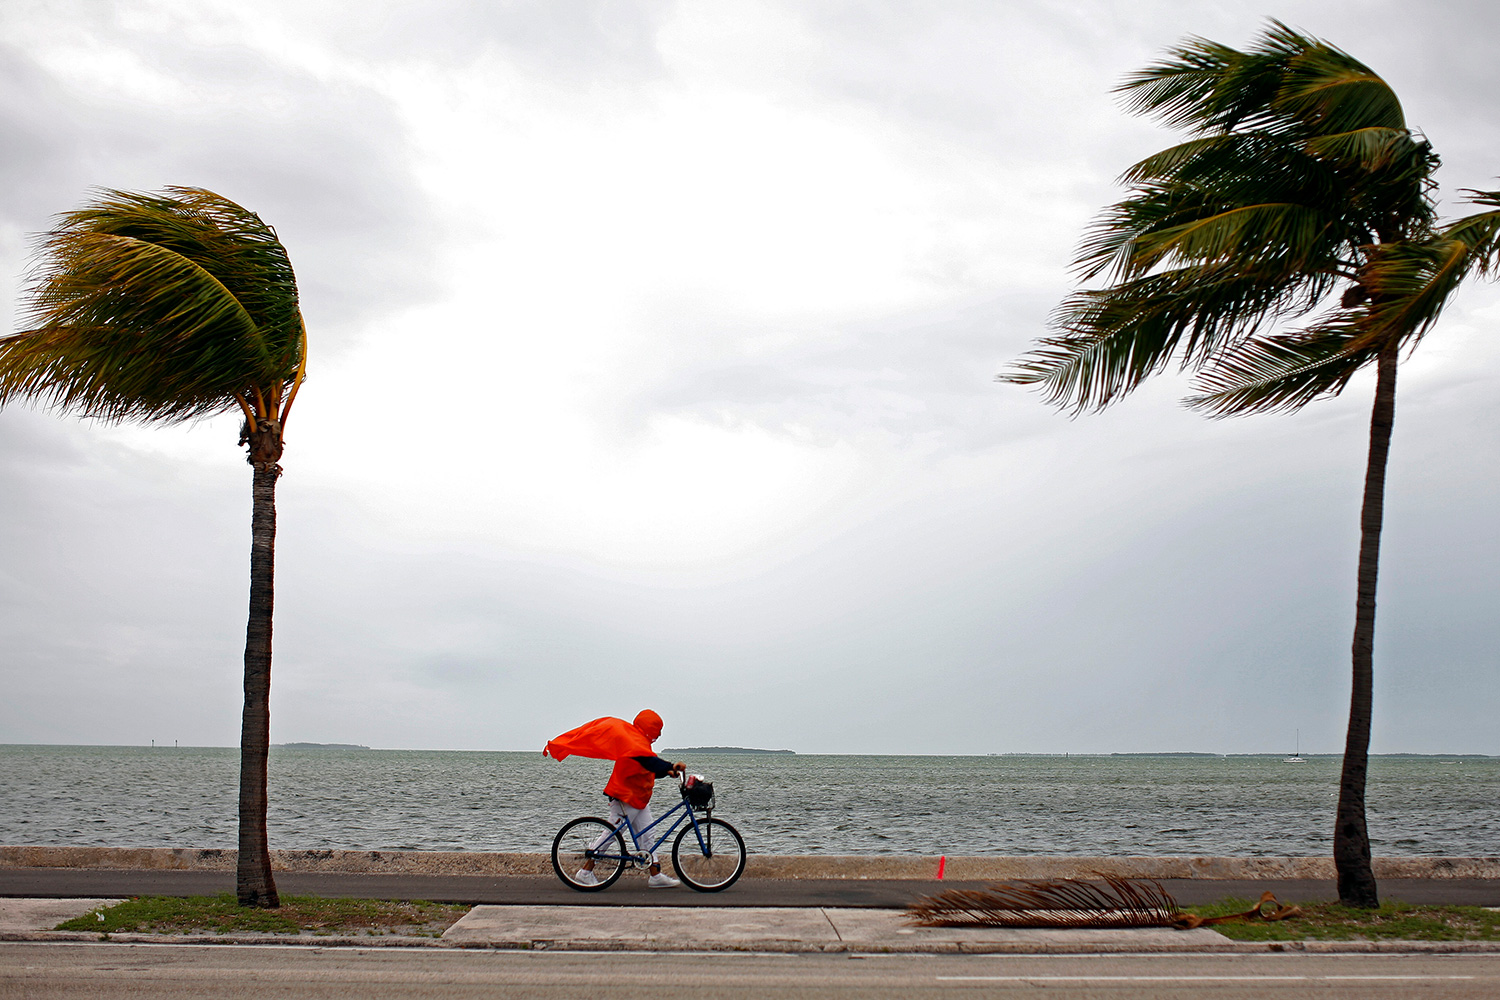 The photo shows the woman walking into a tremendous headwind. Her bright red rain poncho is billowing, and two palm trees, one in front of her and one behind her, are blowing in the same direction.